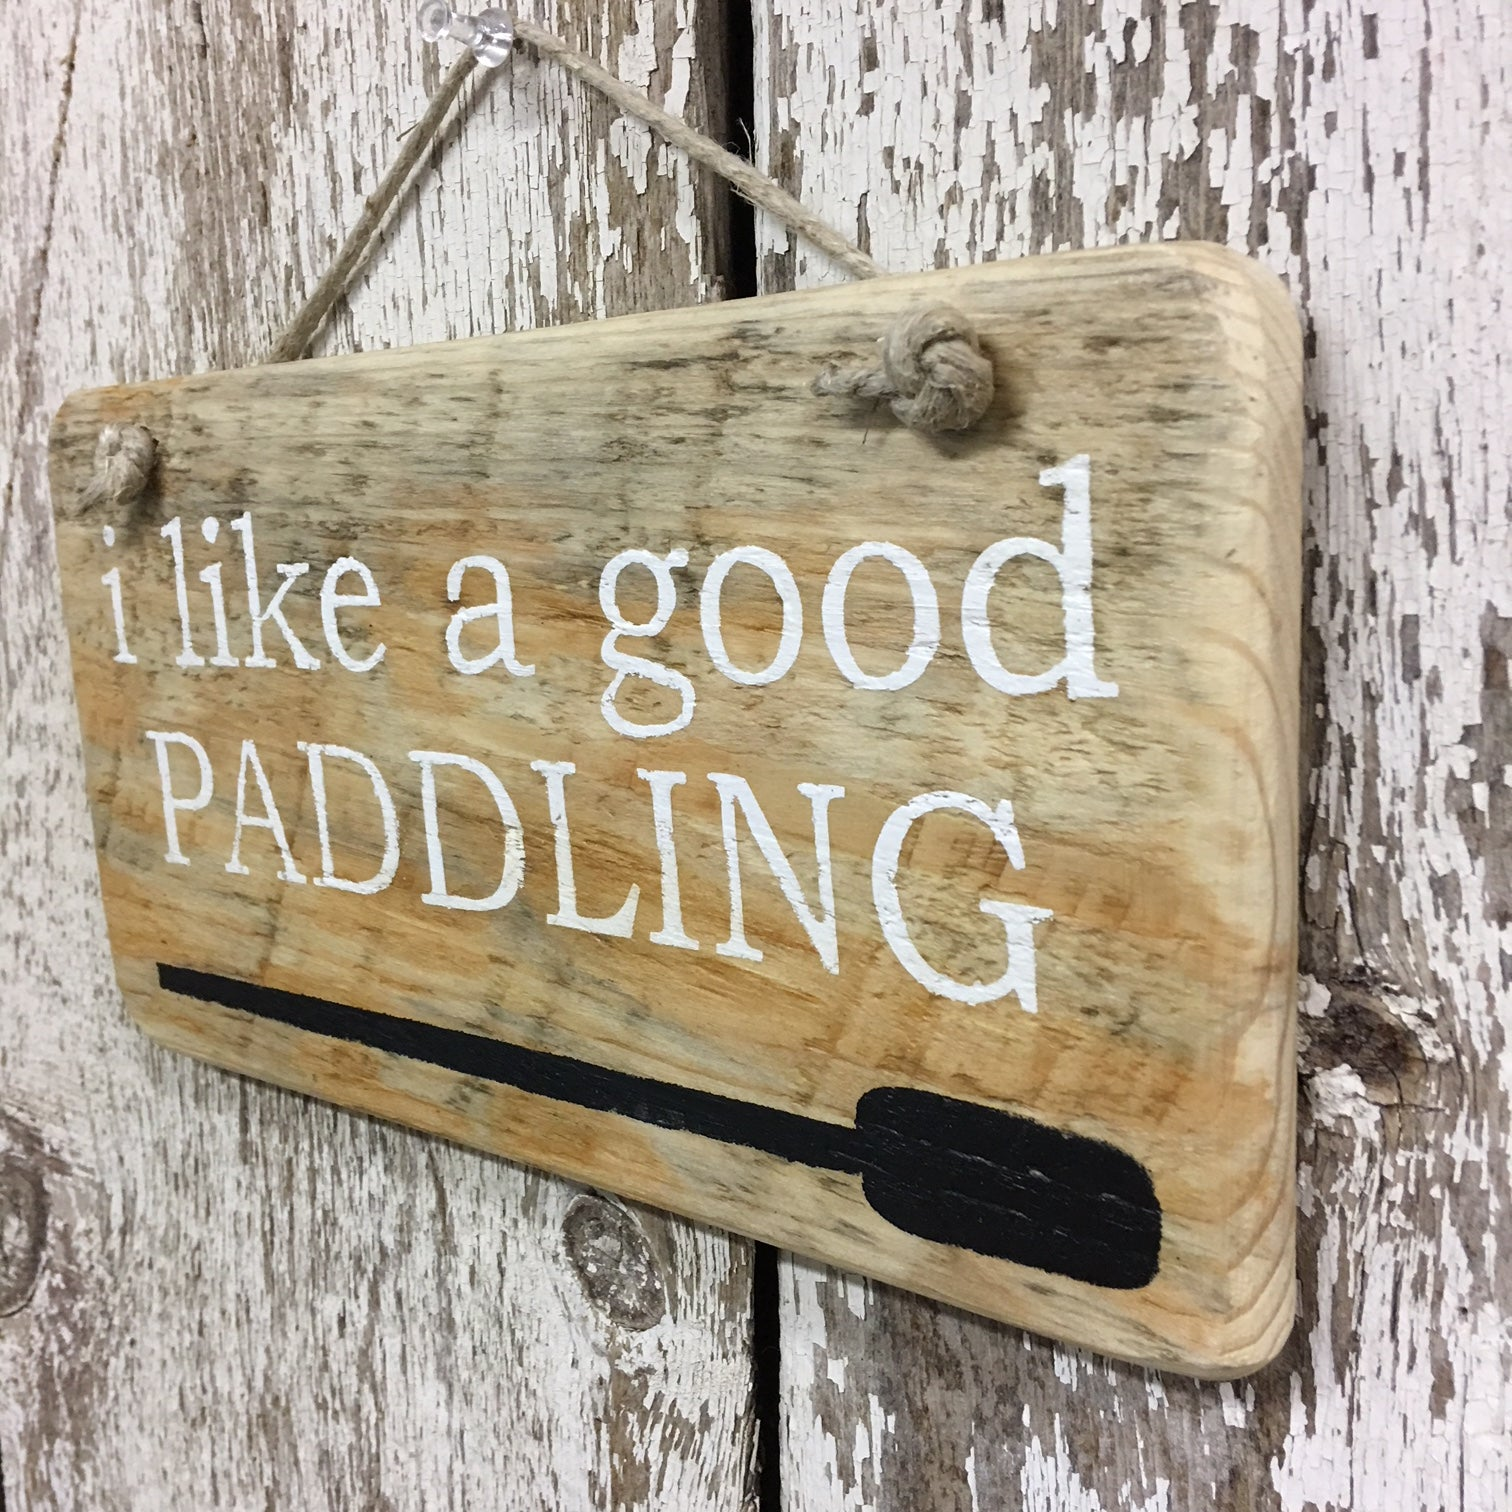 good paddling canoe wood sign made from reclaimed wood